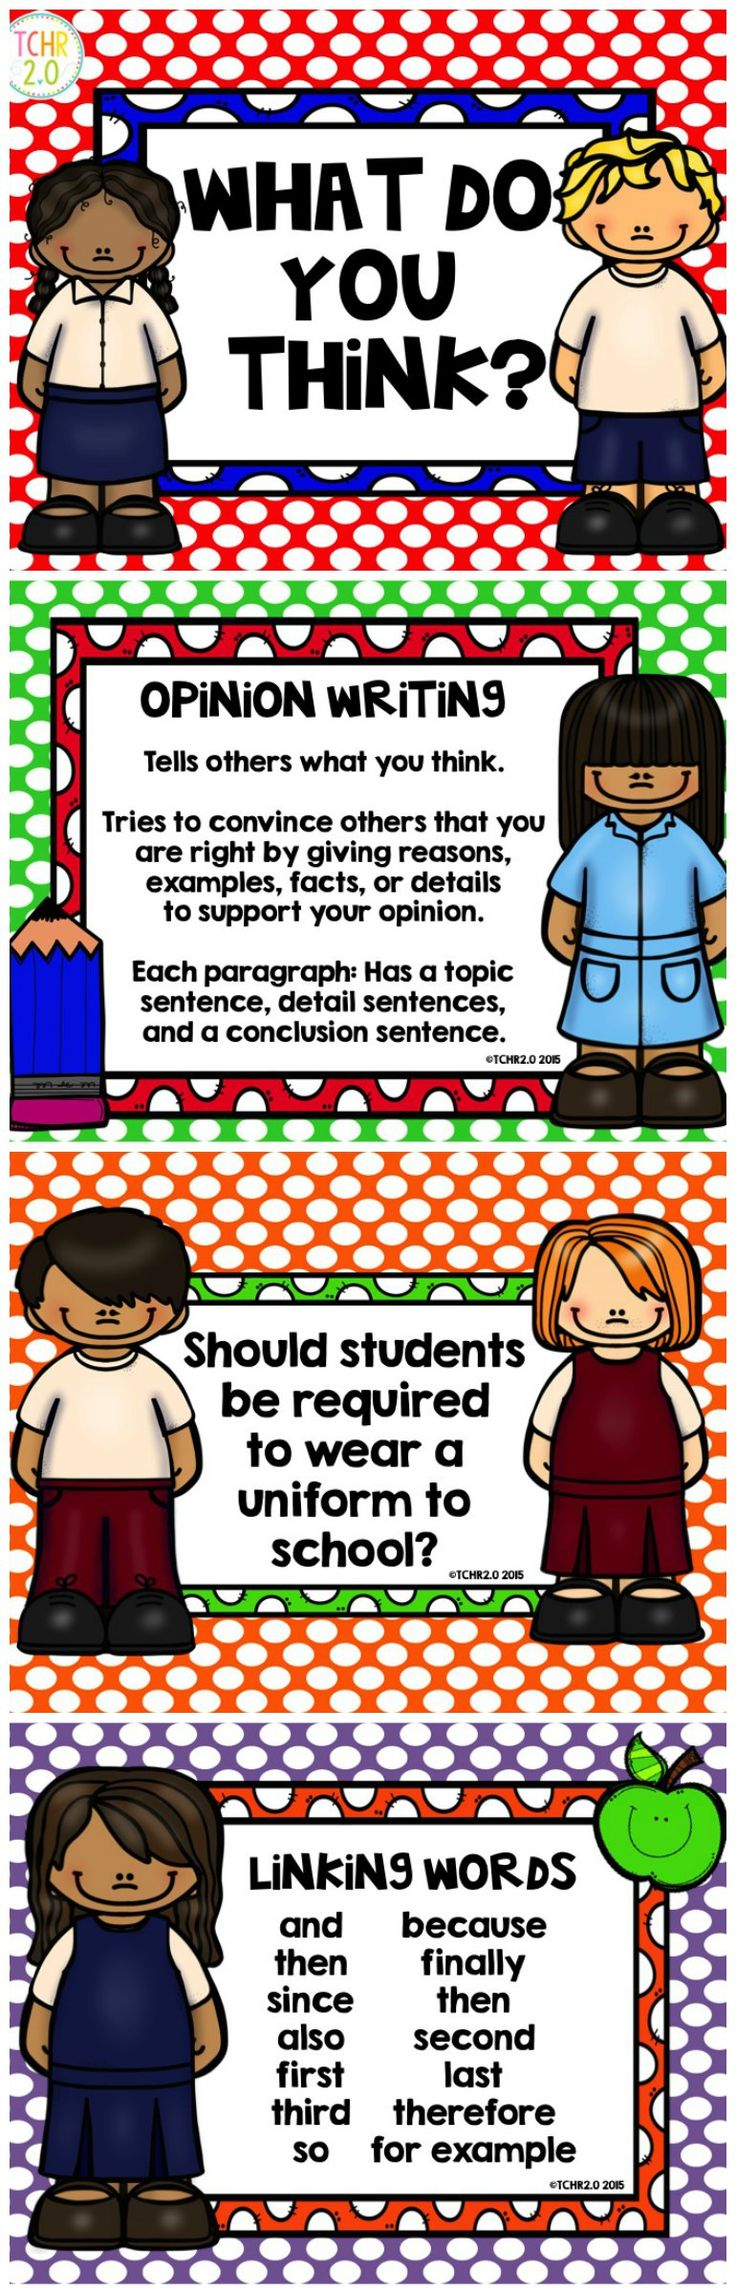 best ideas about should students wear uniforms opinion writing prompt school uniforms